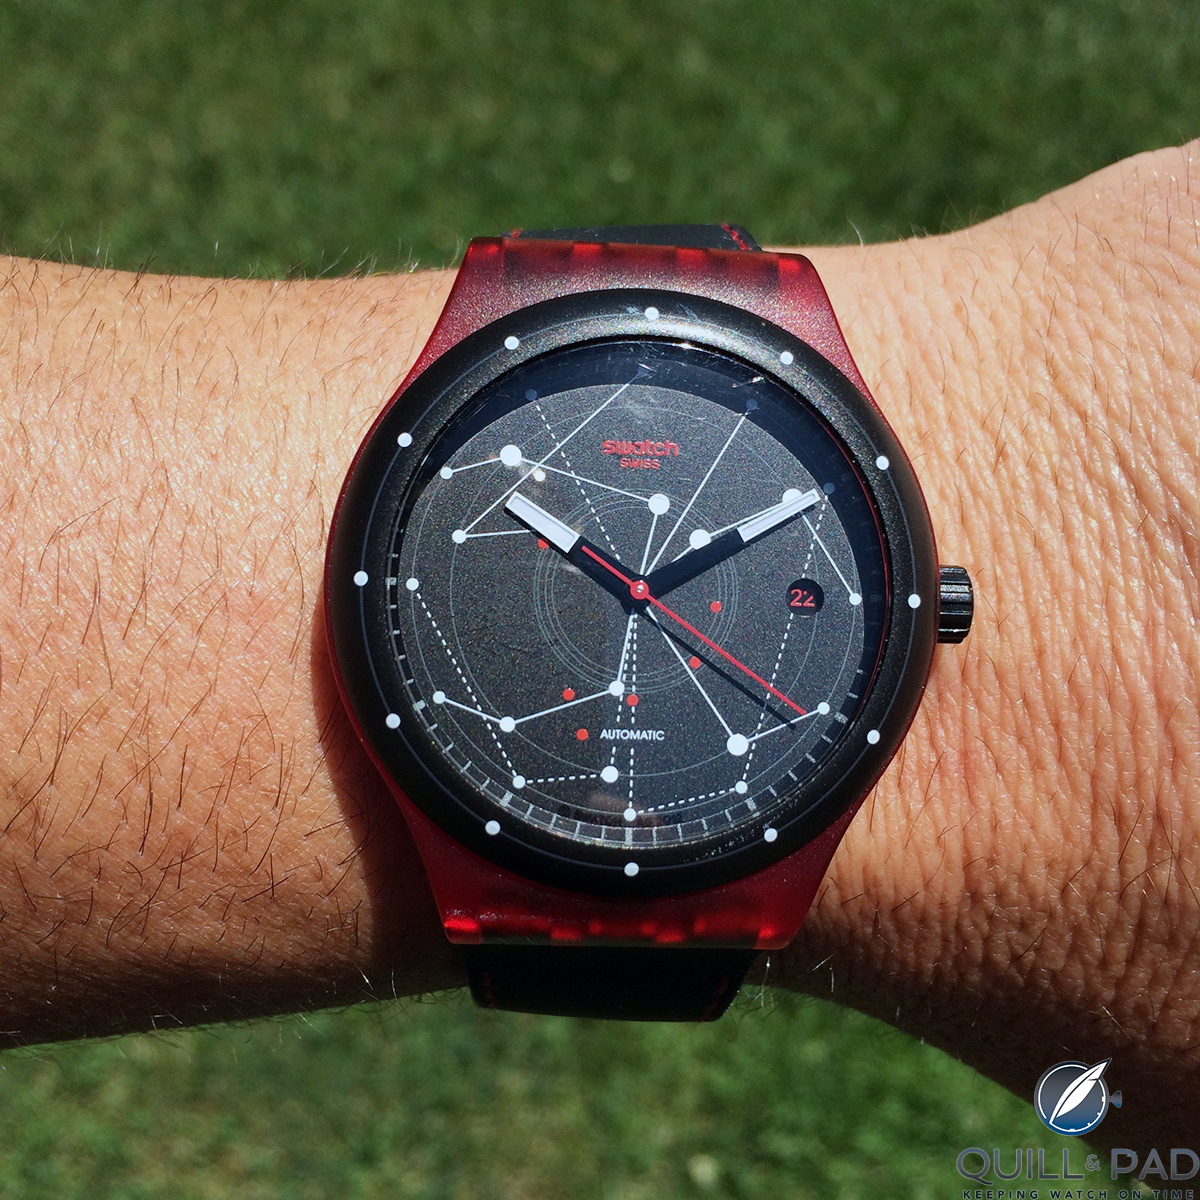 John Keil's Swatch Sistem51 was intended to be a good-luck charm